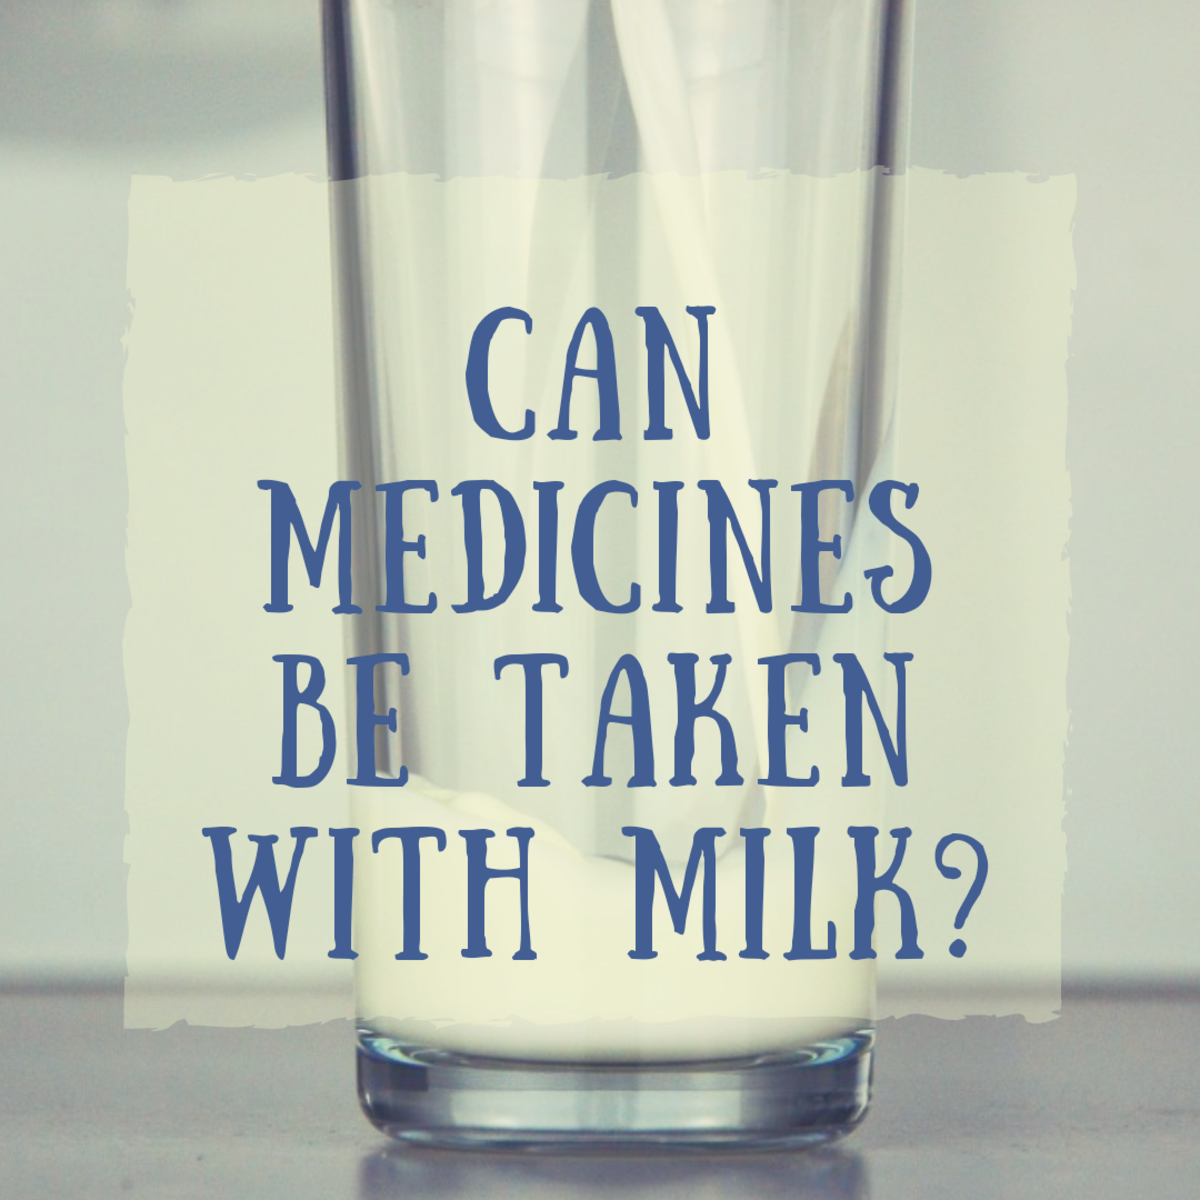 can-medicines-be-taken-with-milk